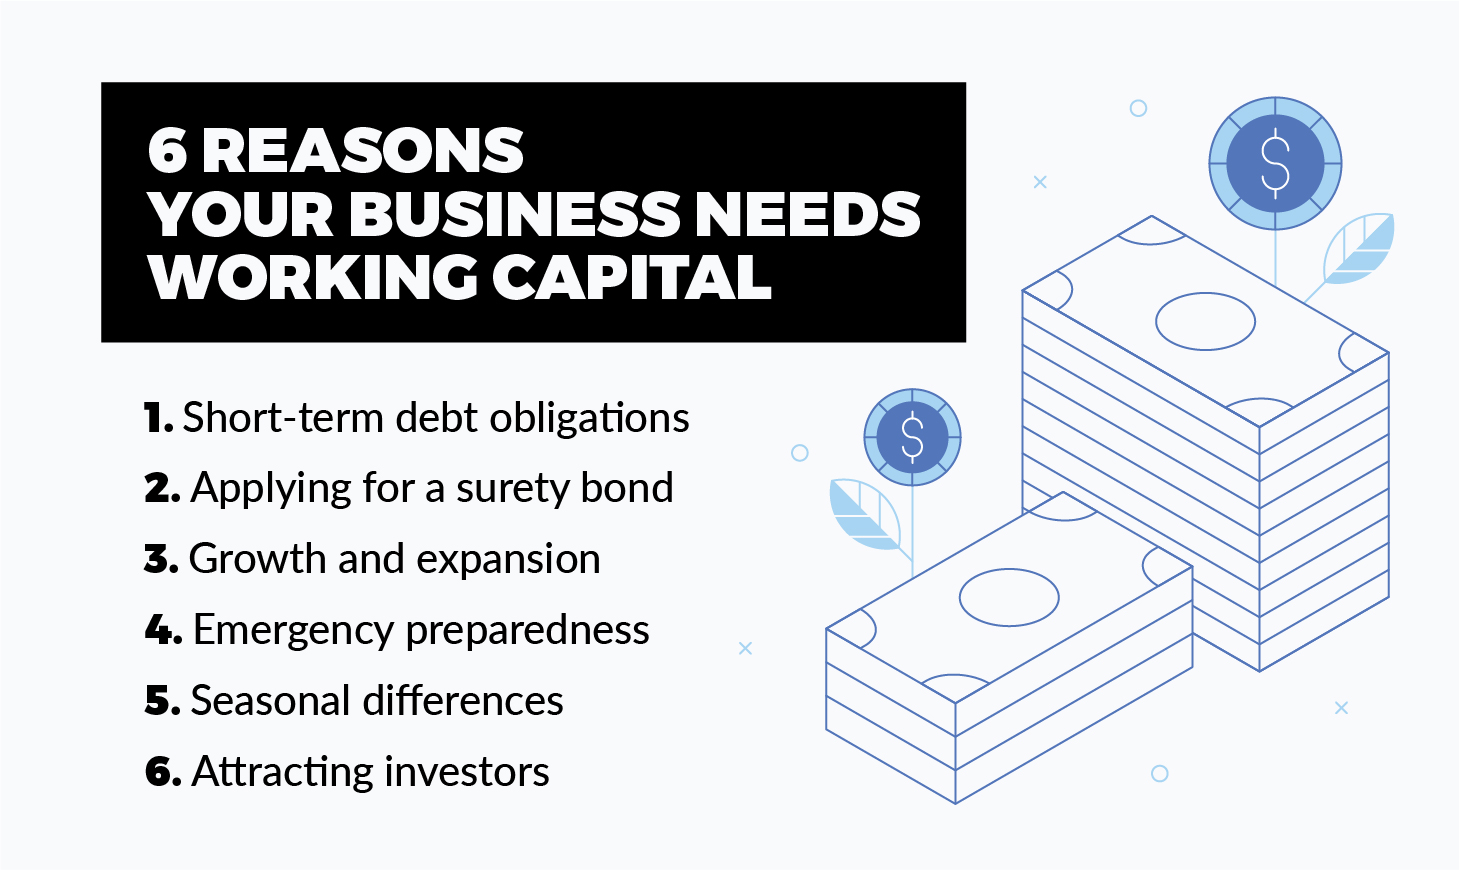 Reasons your business needs more working capital